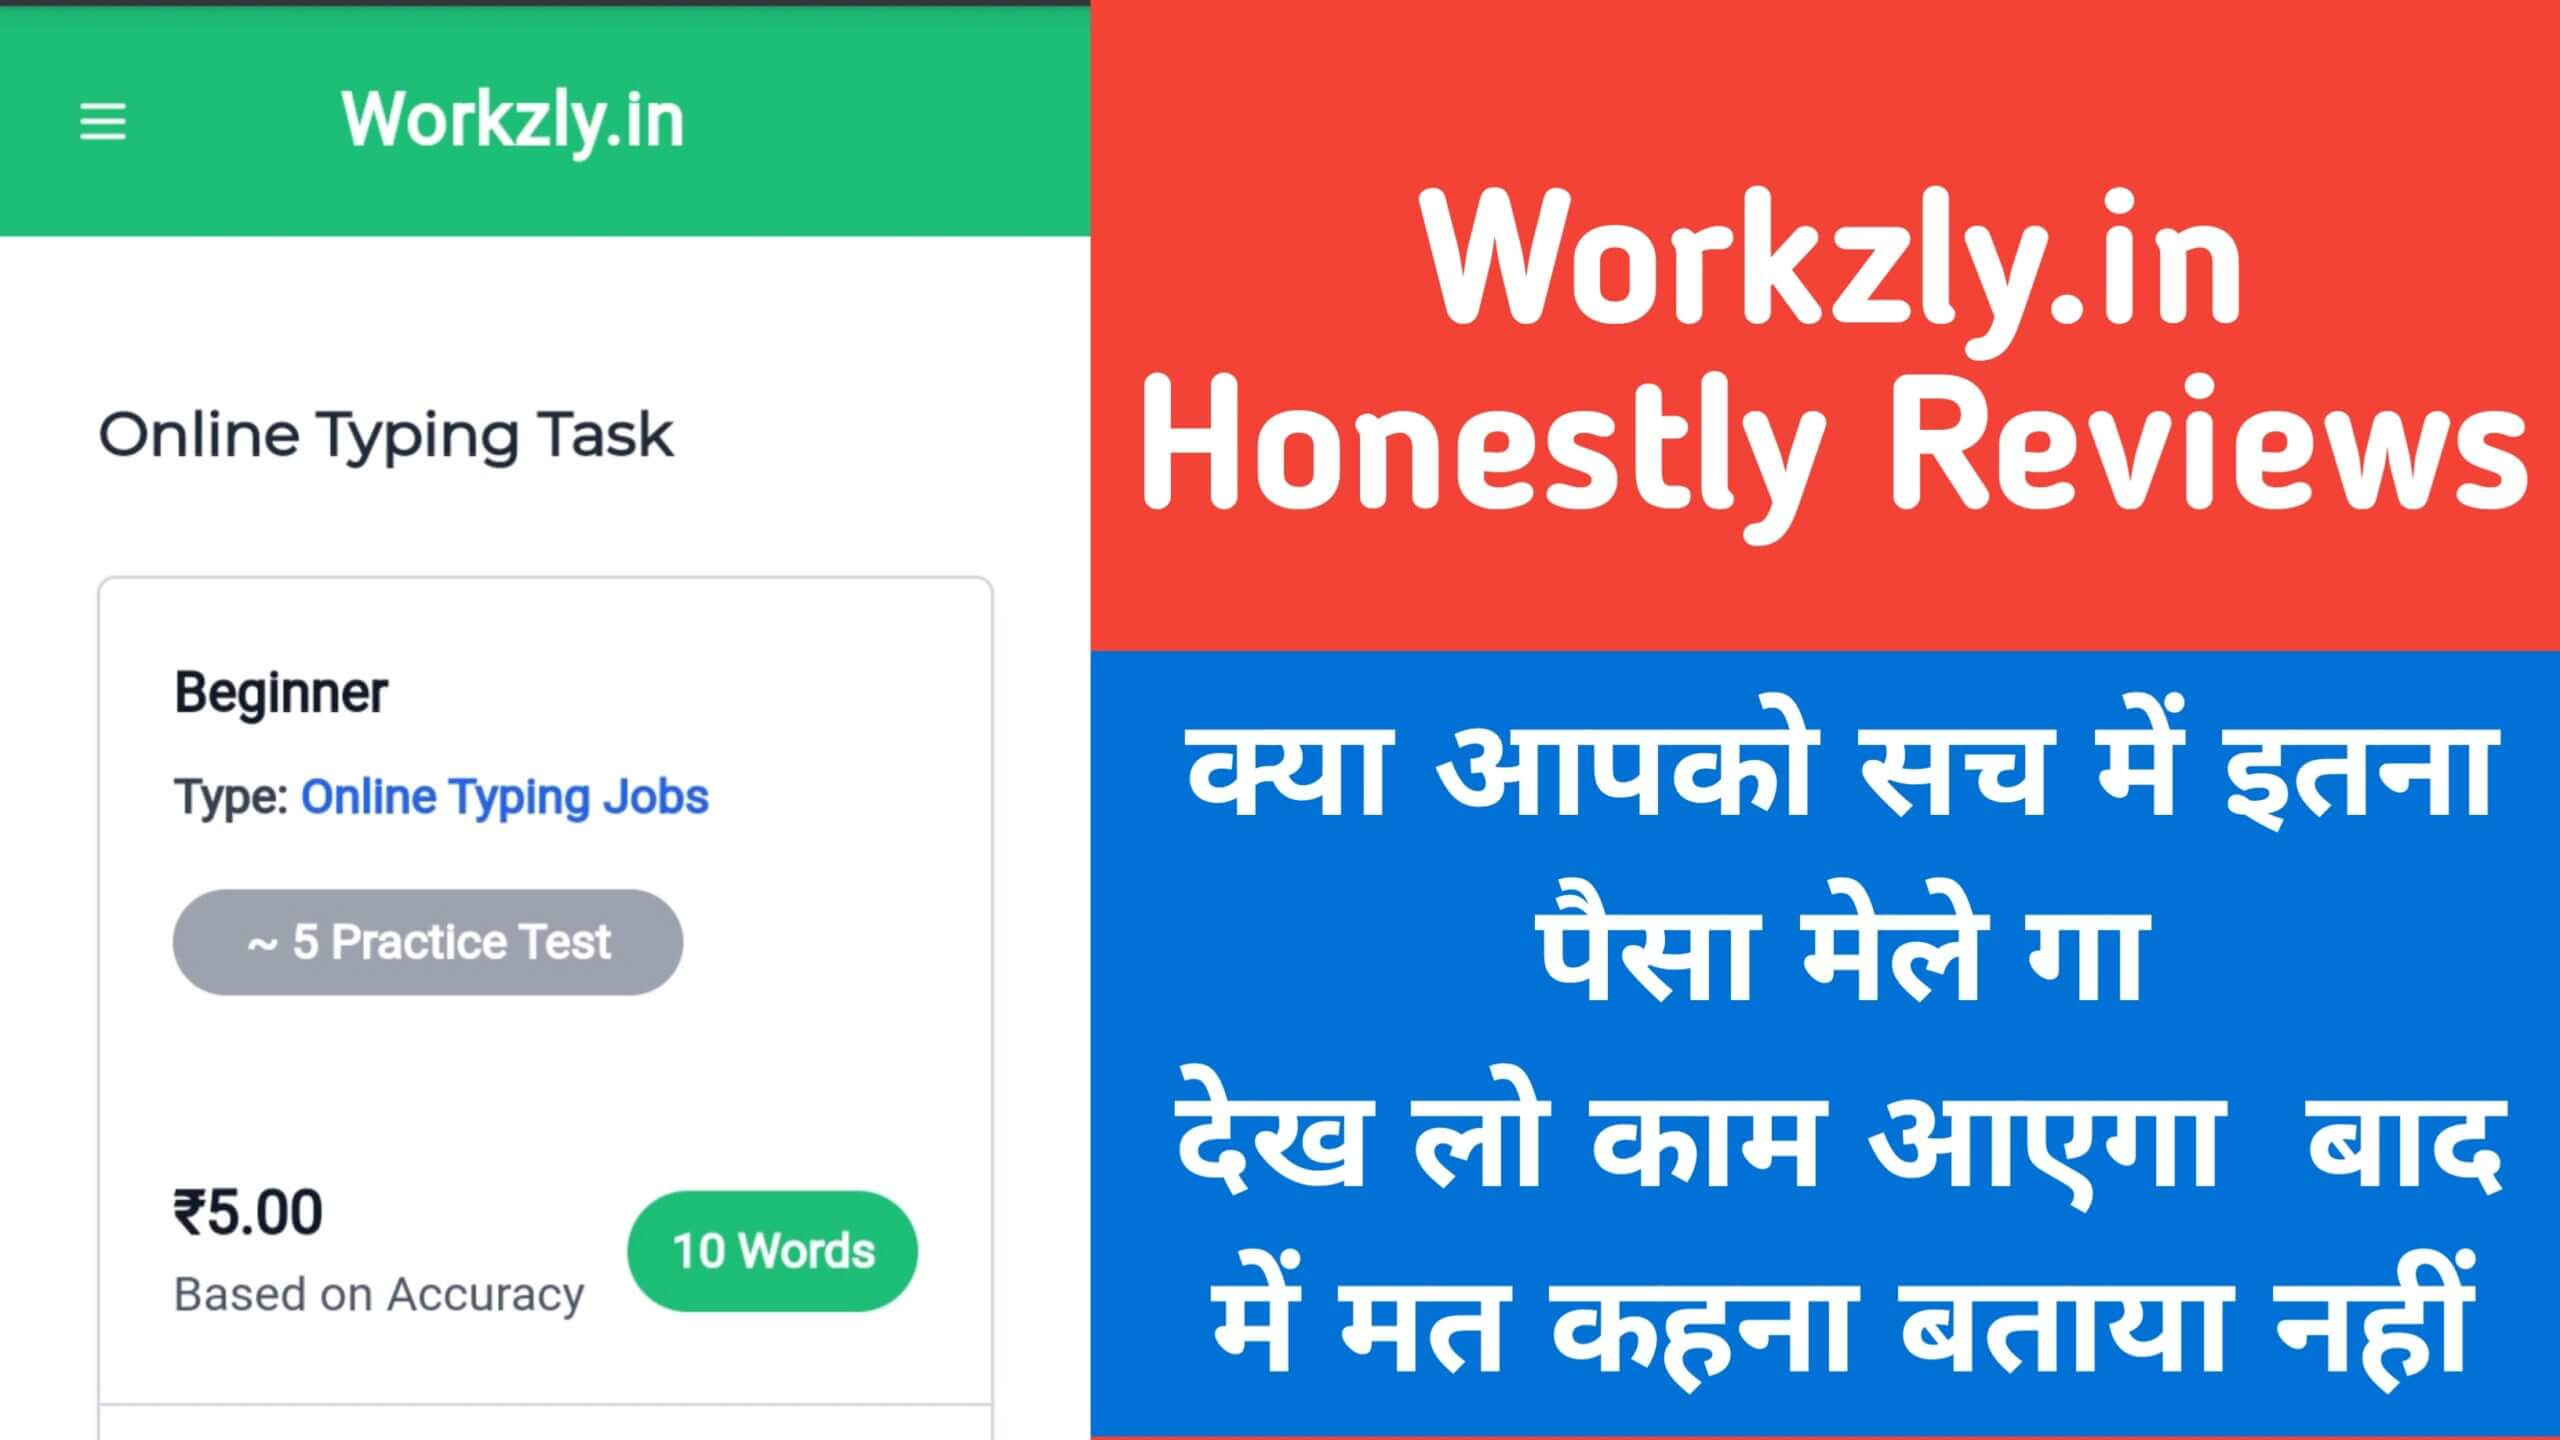 Workzly Website Real or Fake